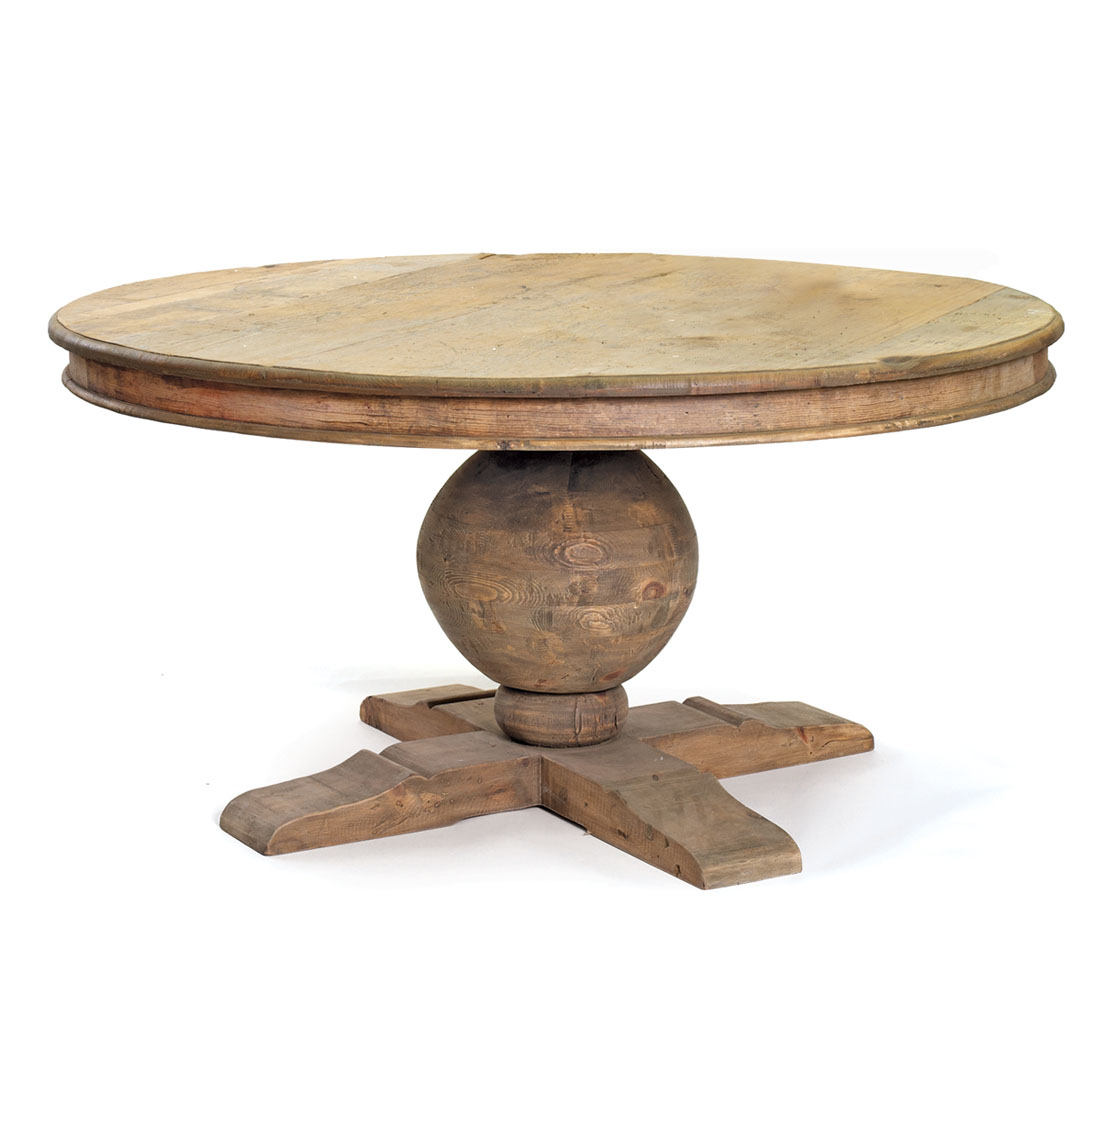 Image of: Round dining tables furniture